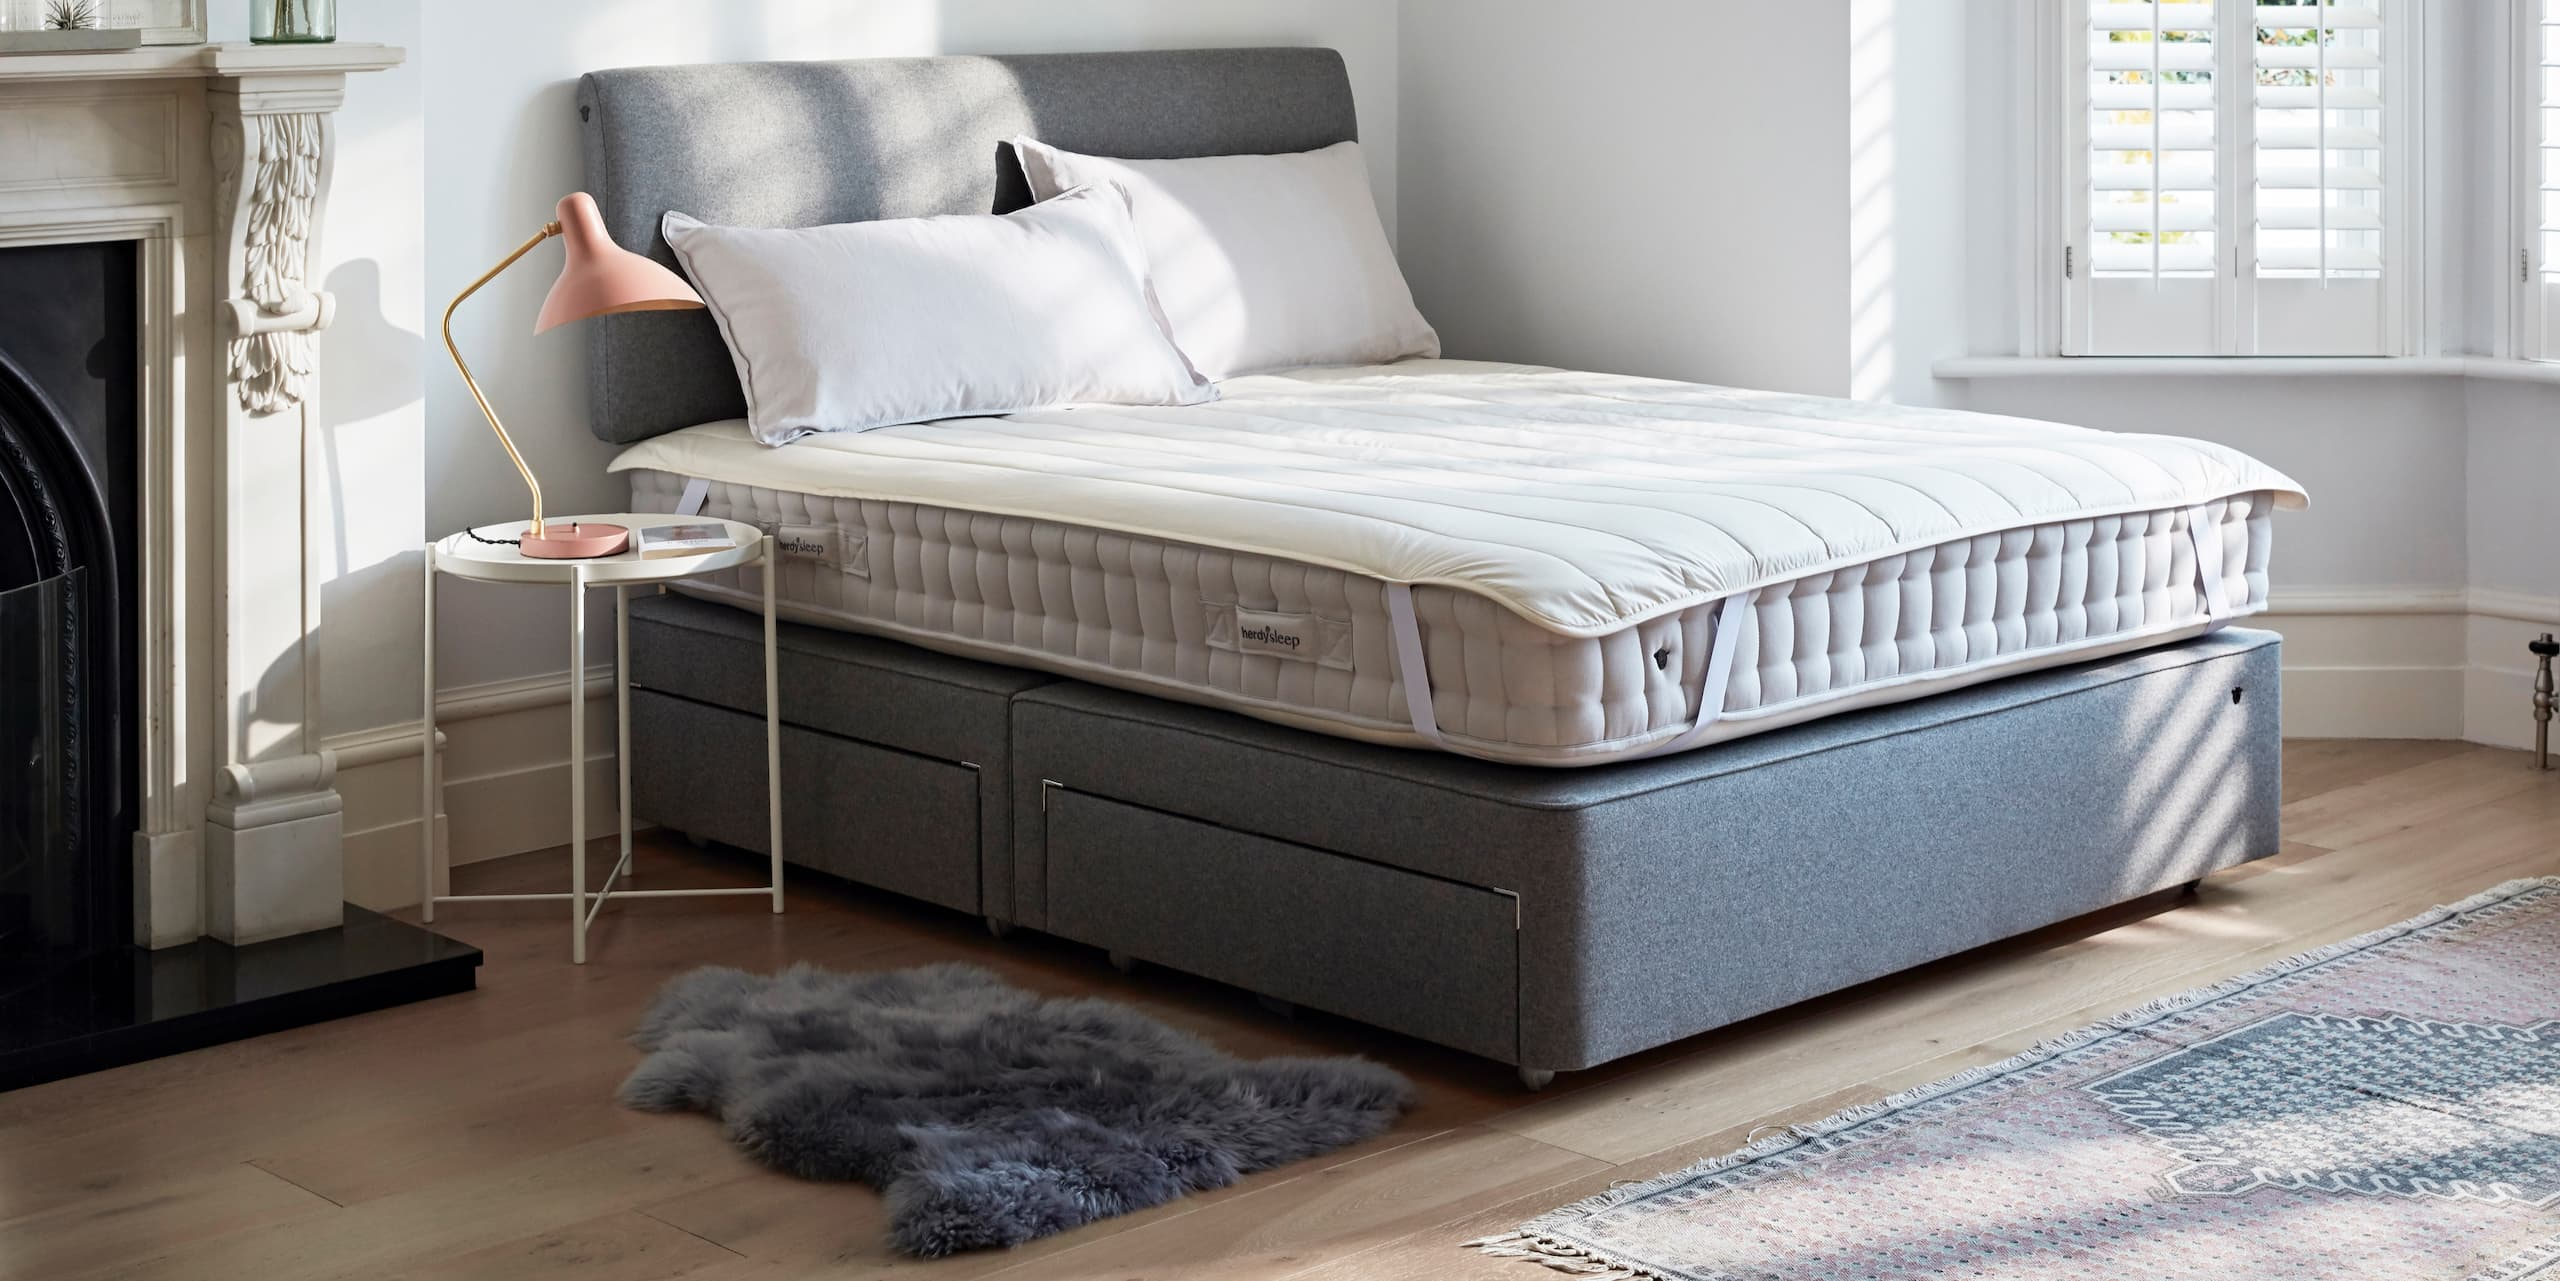 Mattress Sizes: Your Questions Answered